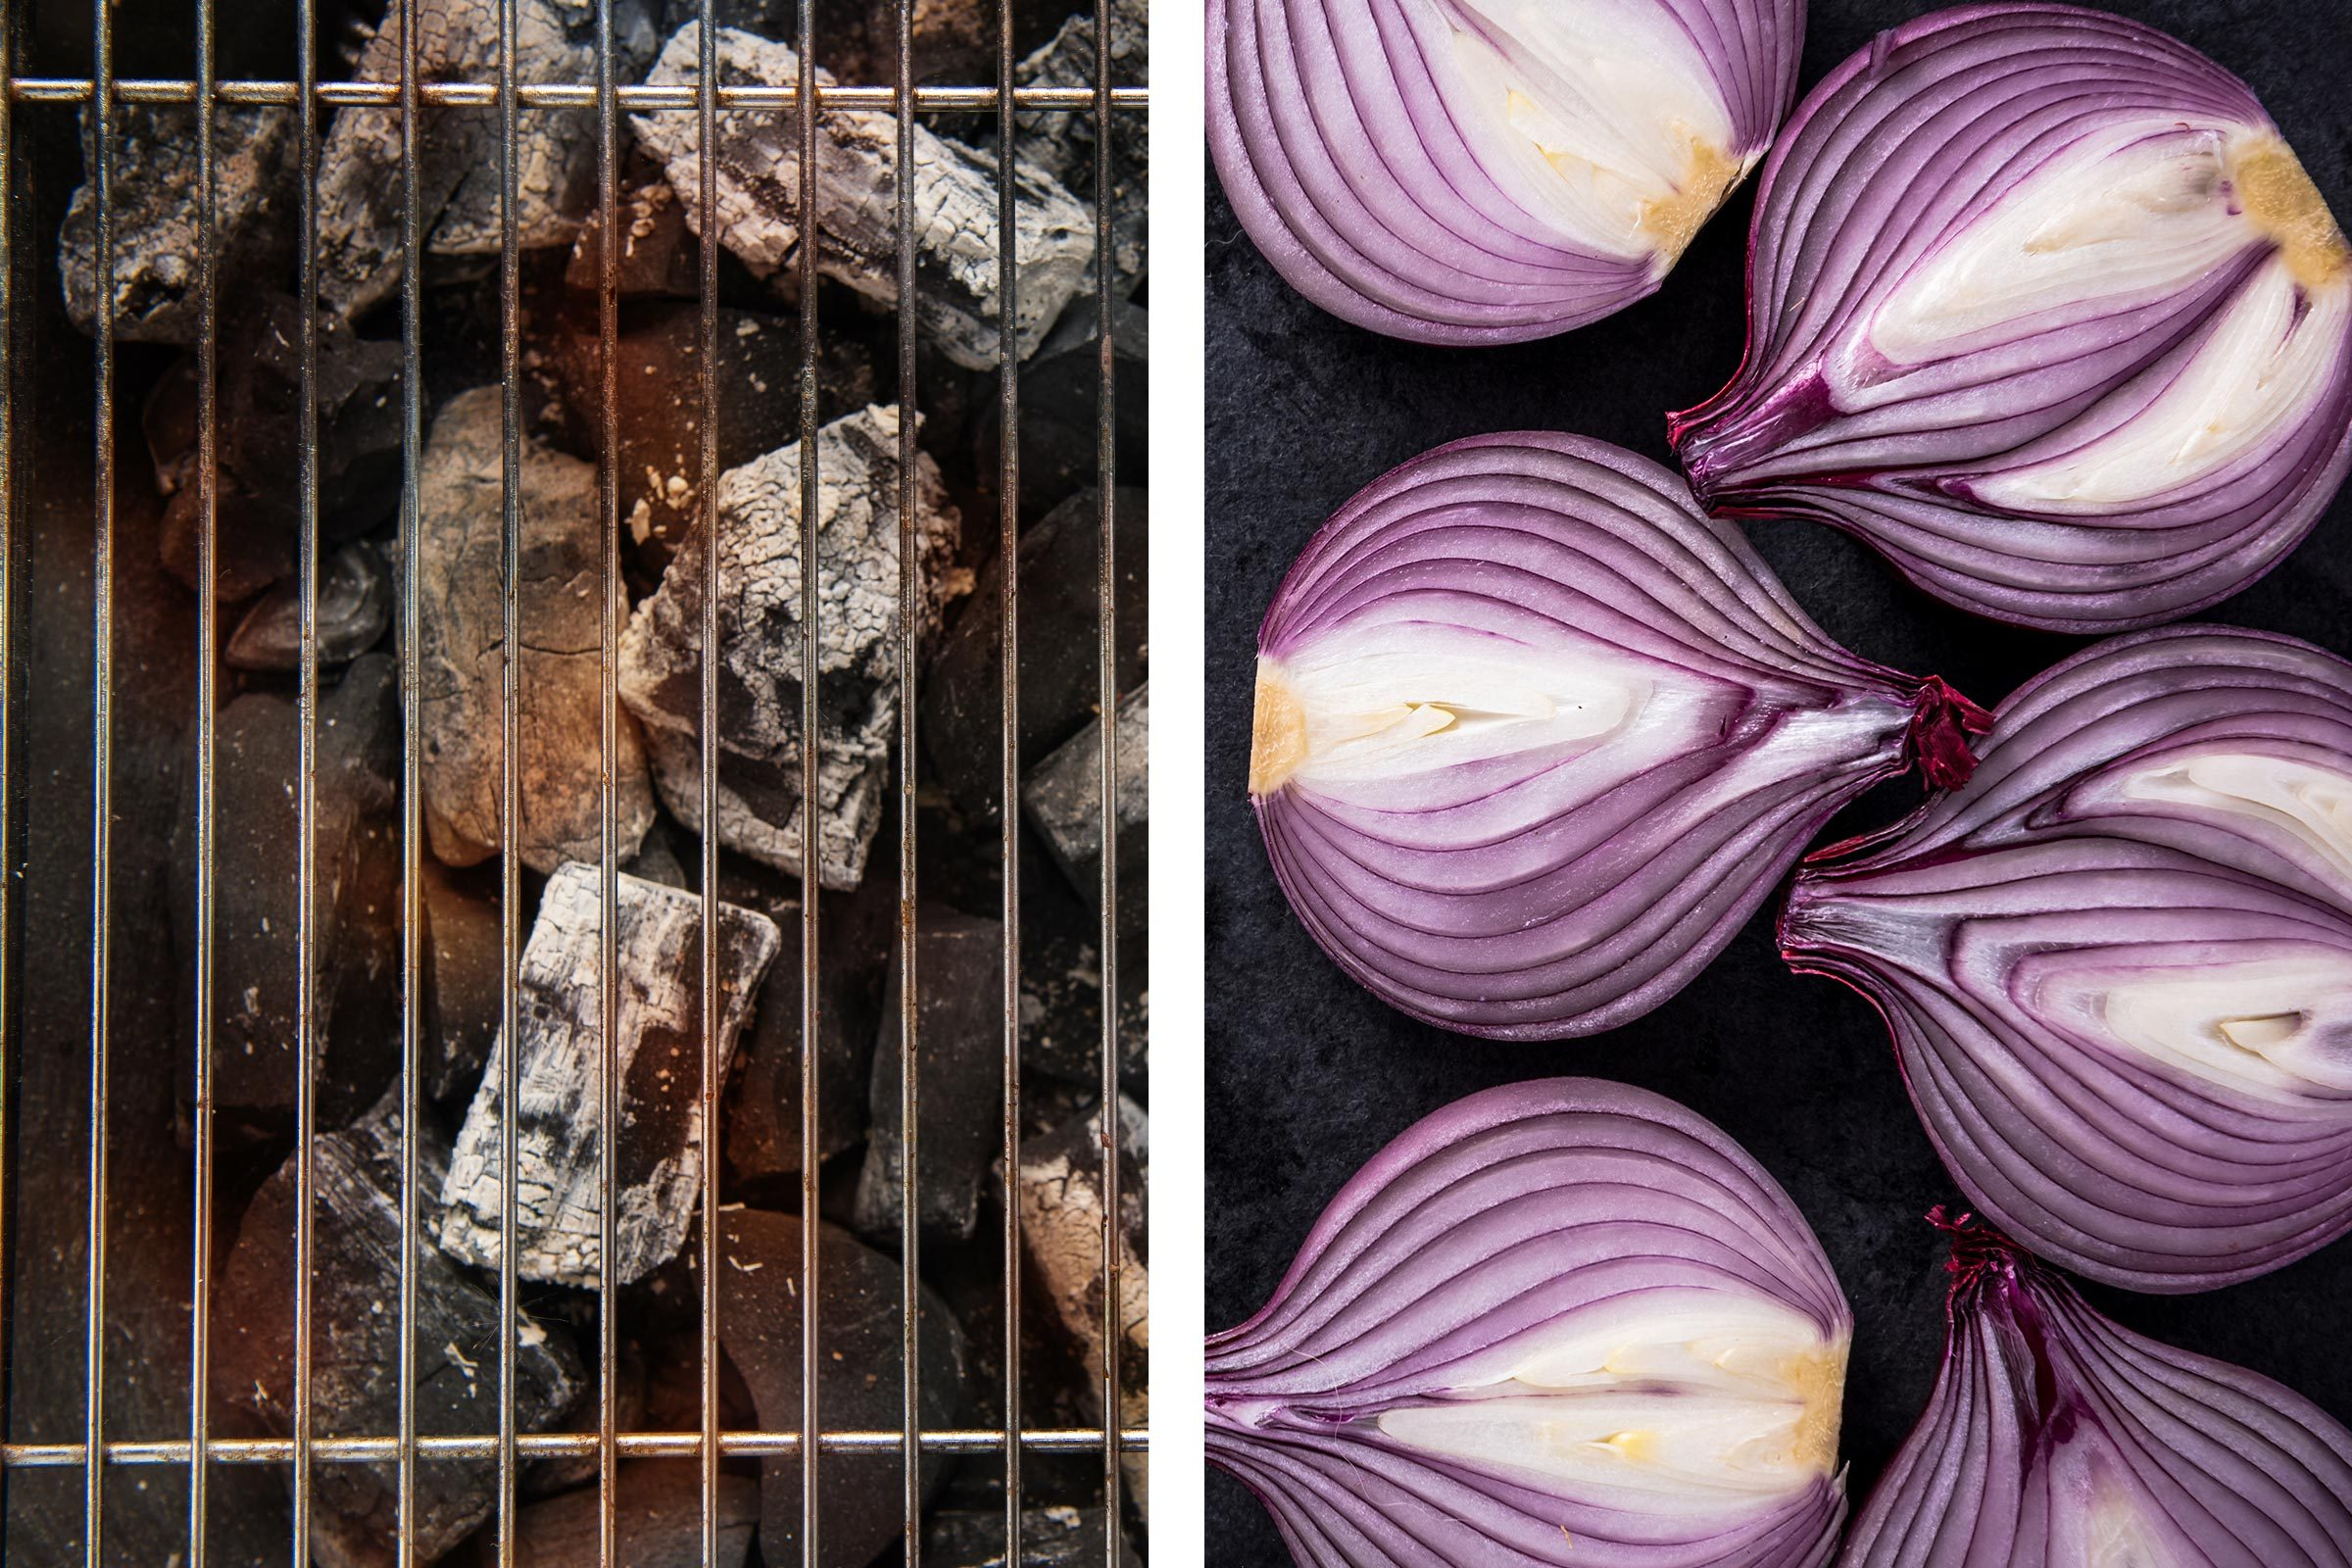 grill onions